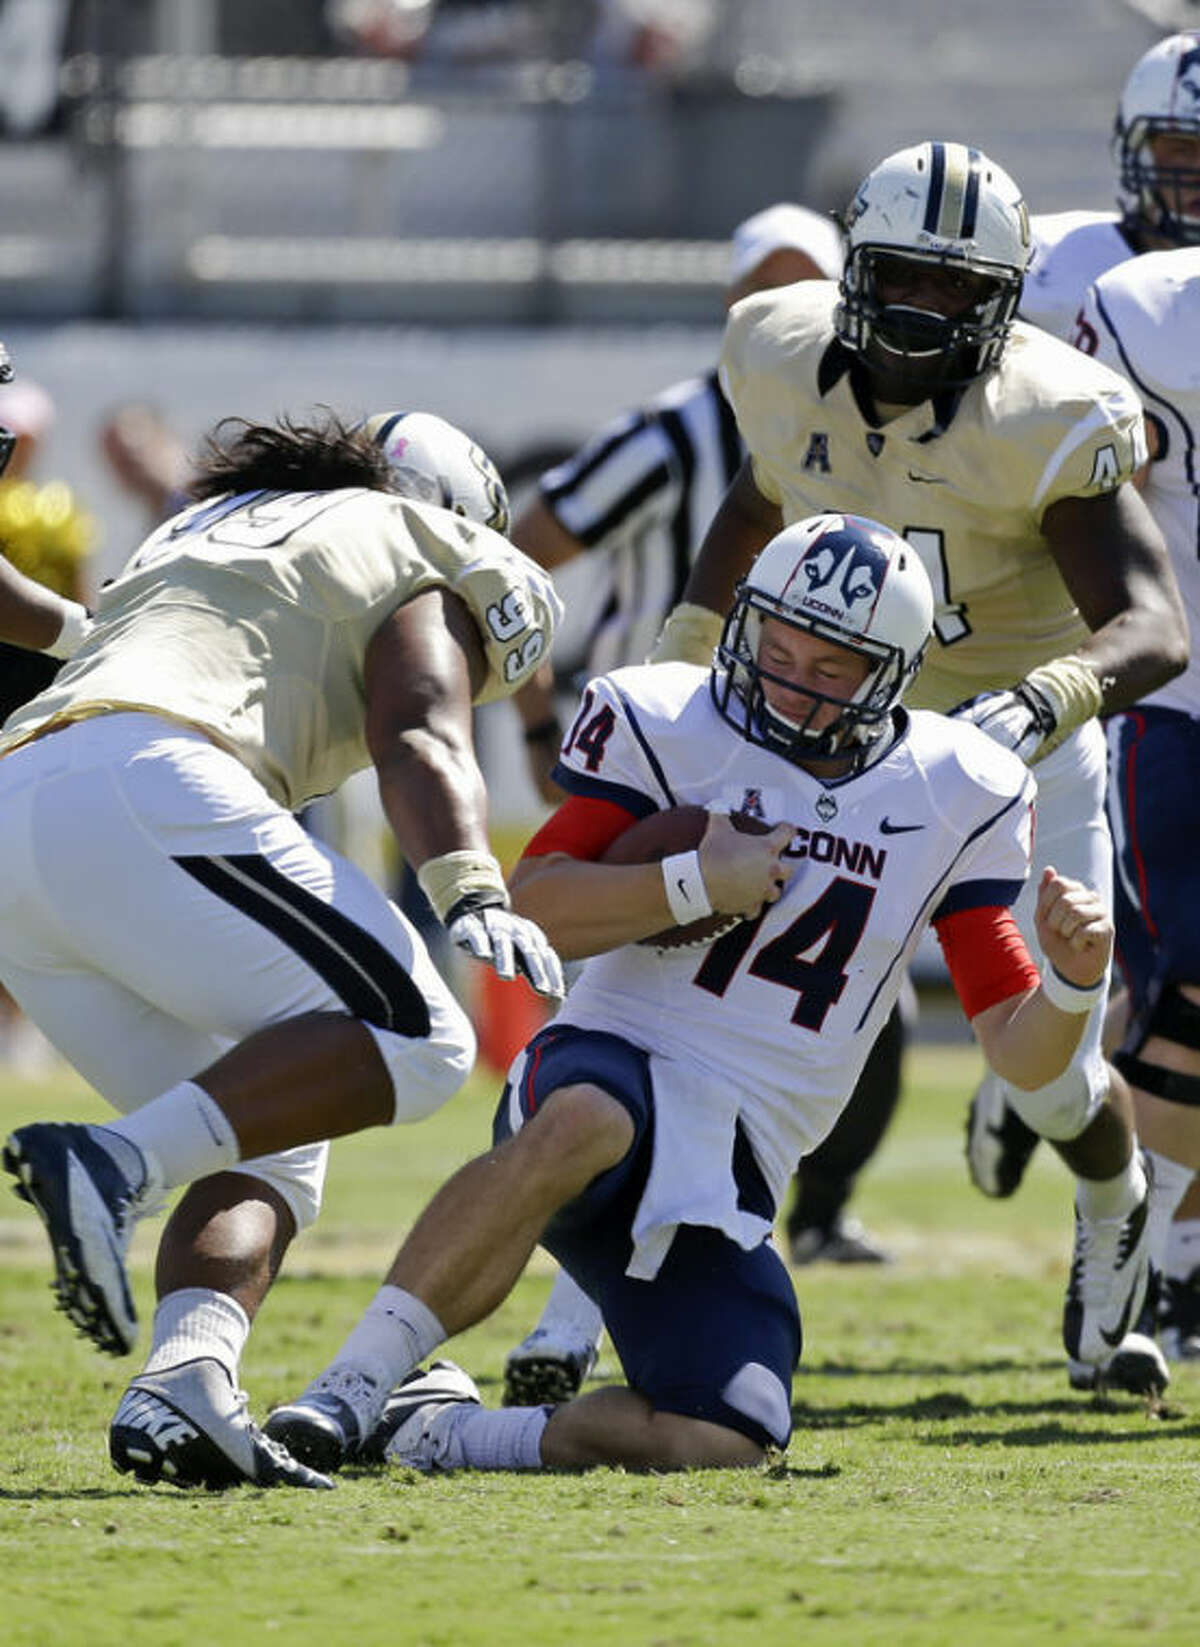 Connecticut quarterback Tim Boyle (14) slides to the turf before his is tackled by Central Florida defensive linemen Jaryl Mamea (99) and Miles Pace (44) during the first half of an NCAA college football game in Orlando, Fla., Saturday, Oct. 26, 2013.(AP Photo/John Raoux)